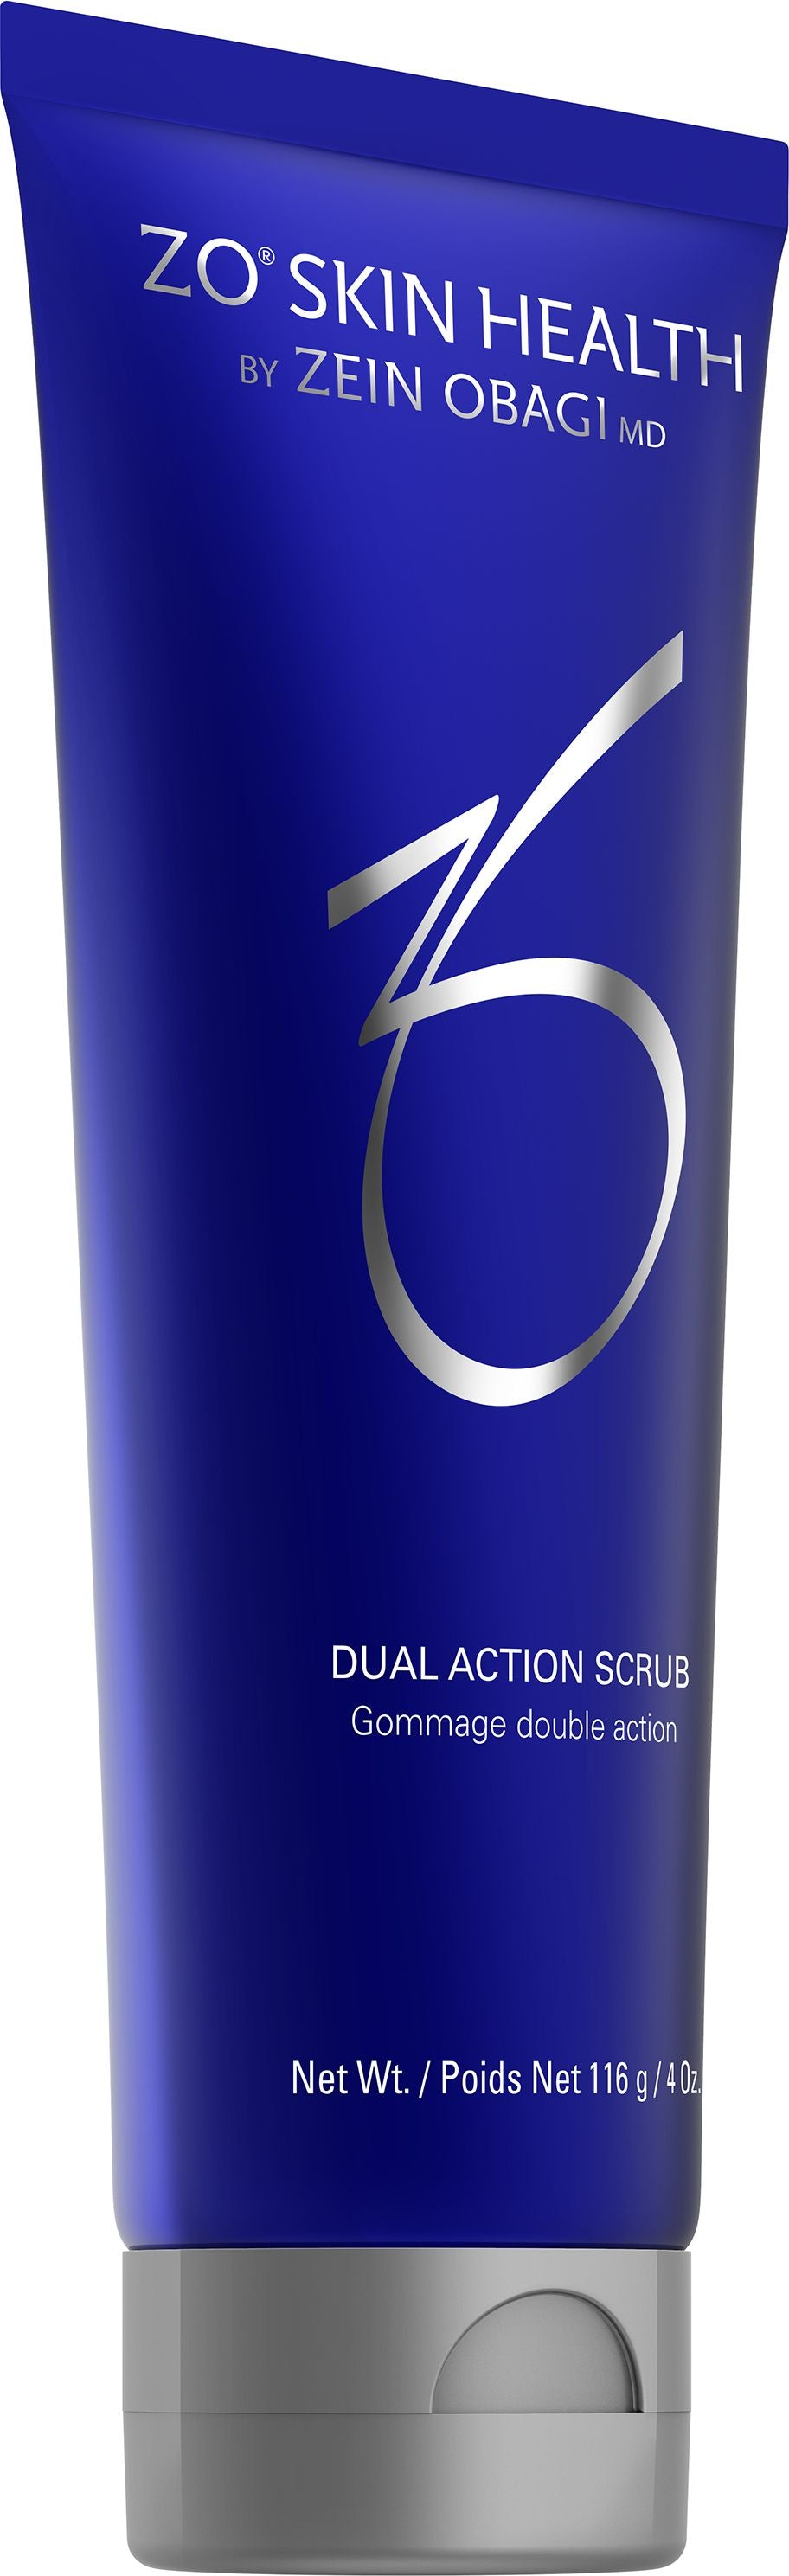 ZO Skin Health Dual Action Scrub